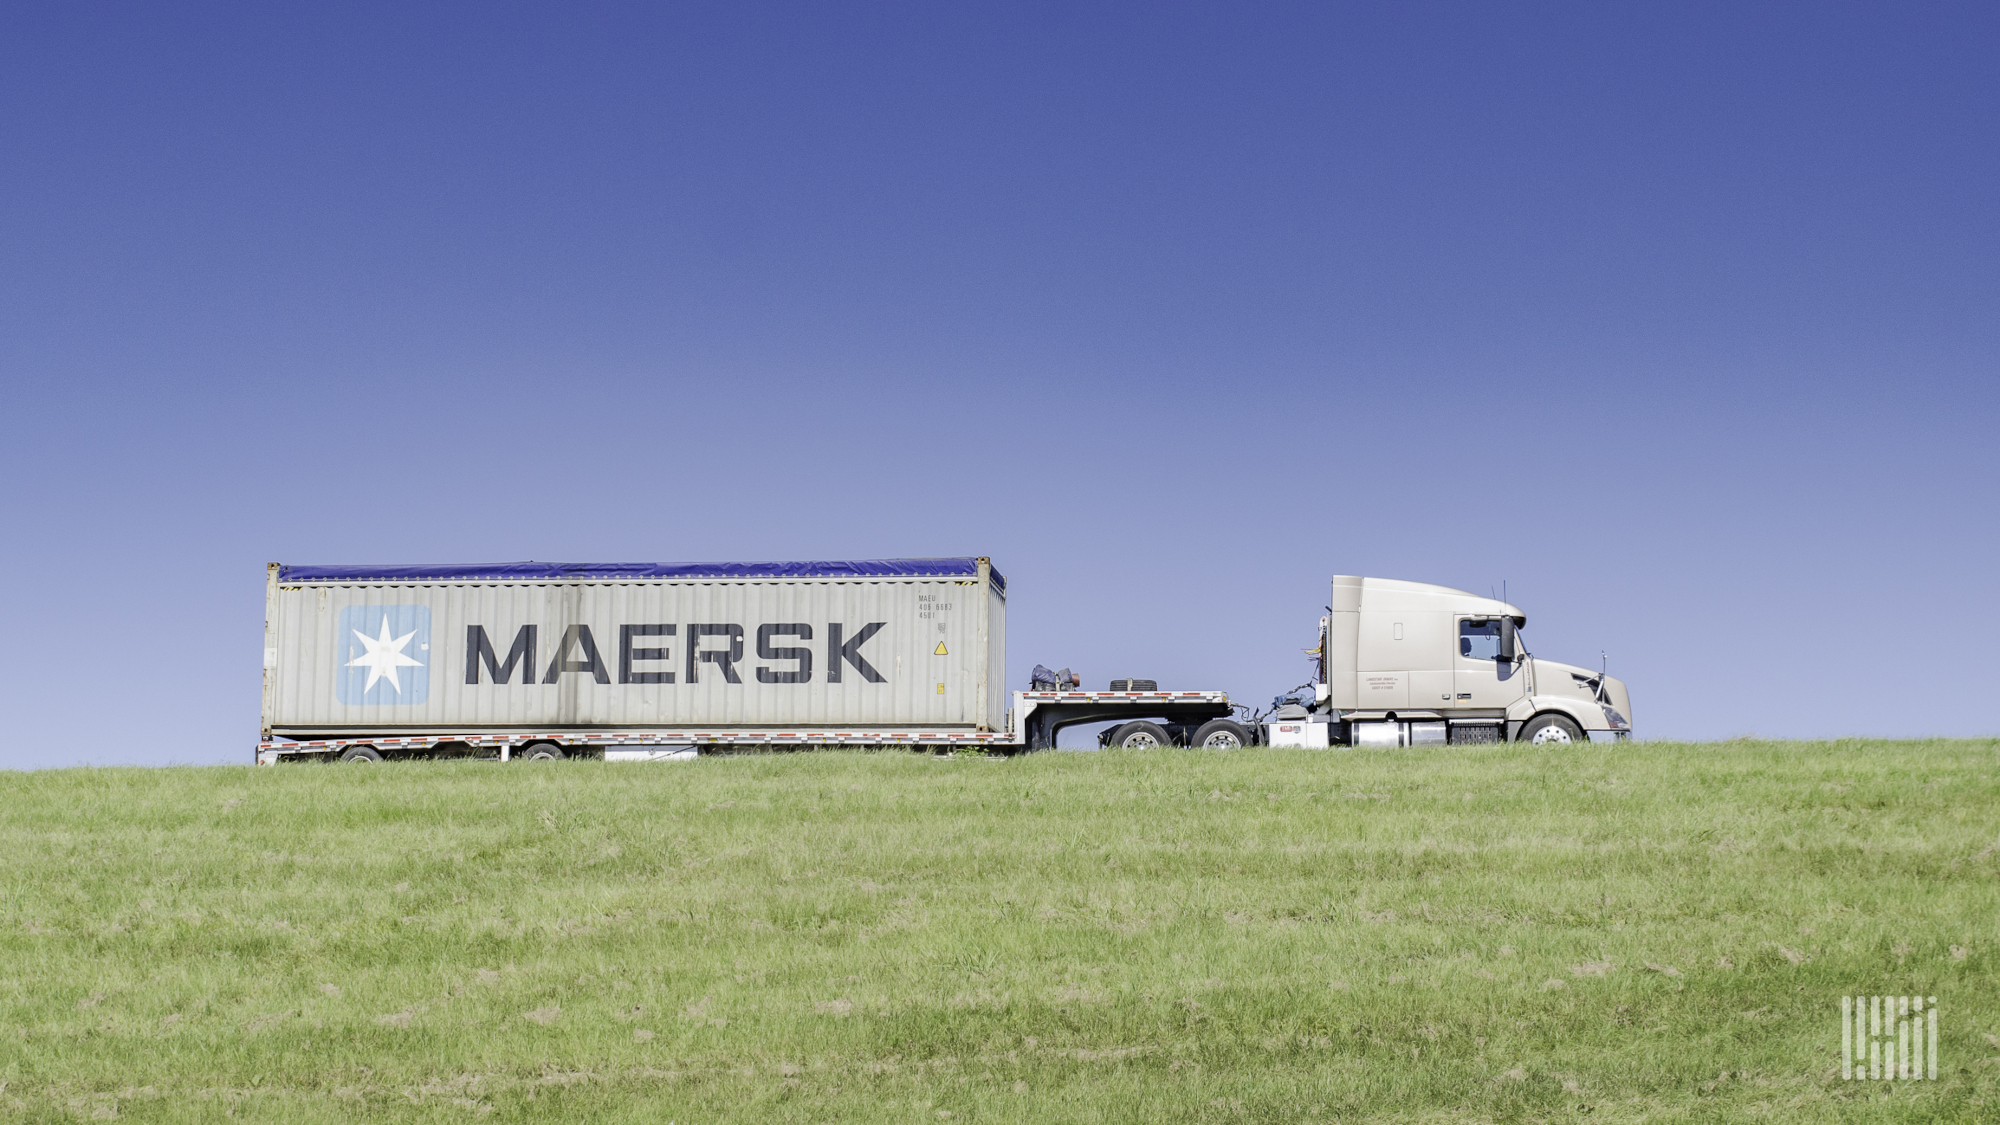 Looking at the ins and outs of Maersk's latest e-commerce moves and acquisitions